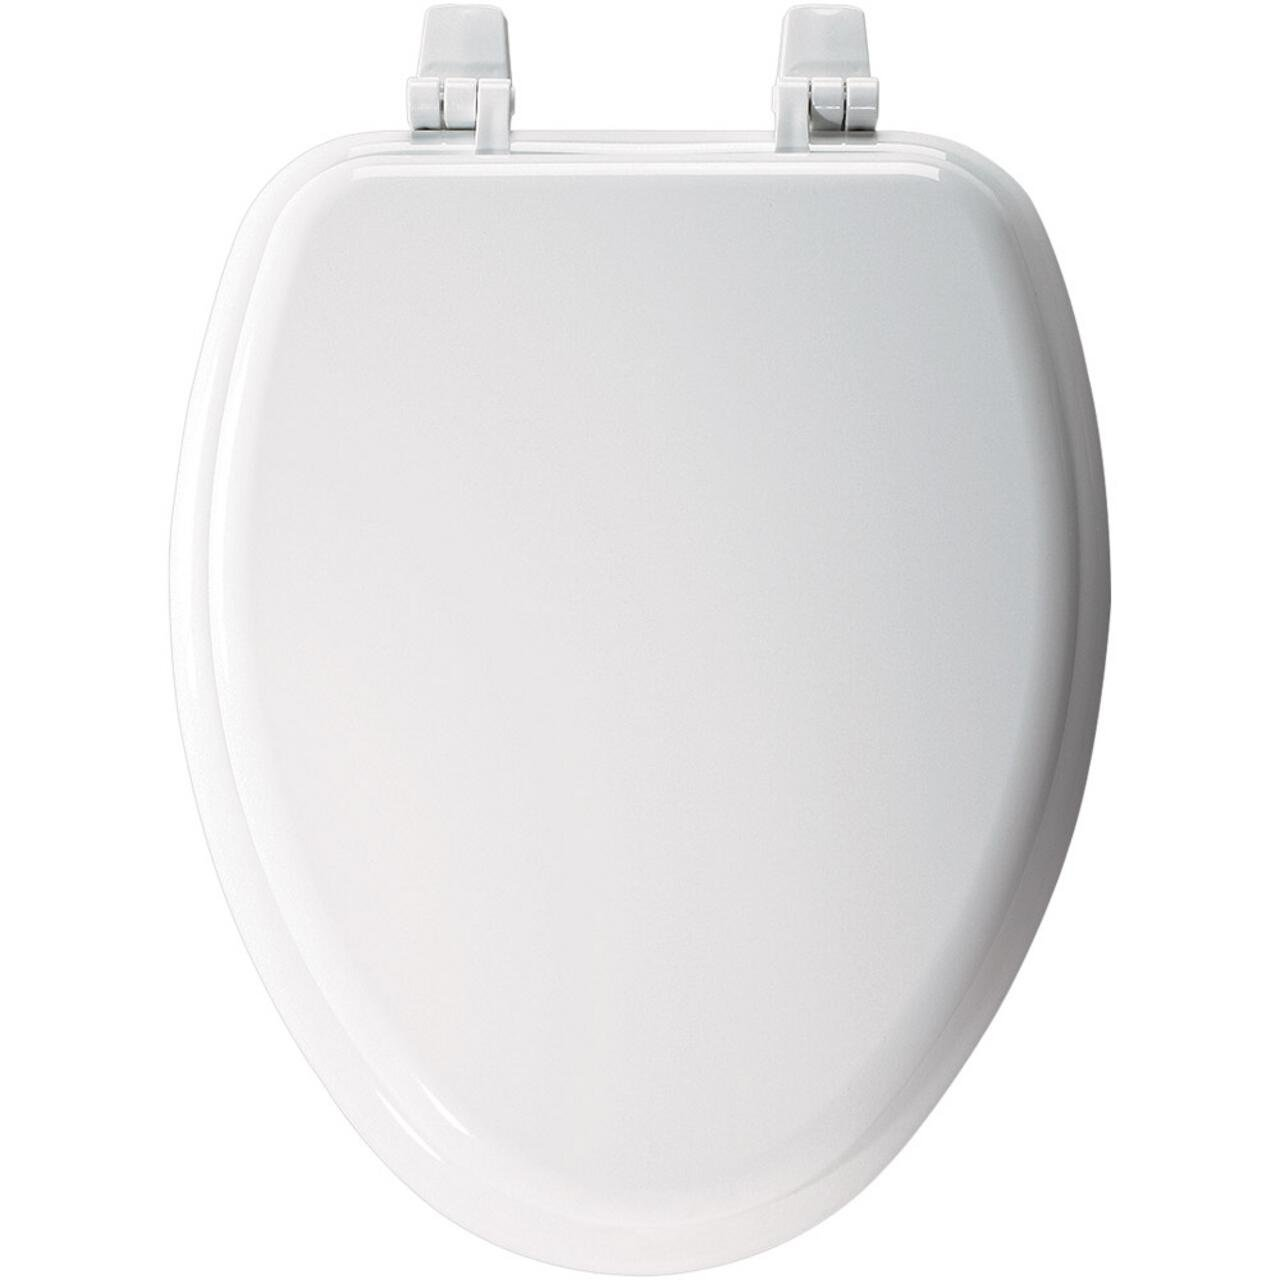 Church 1400TTC 000 Elongated Wood Toilet Seat with Cover, White by Bemis